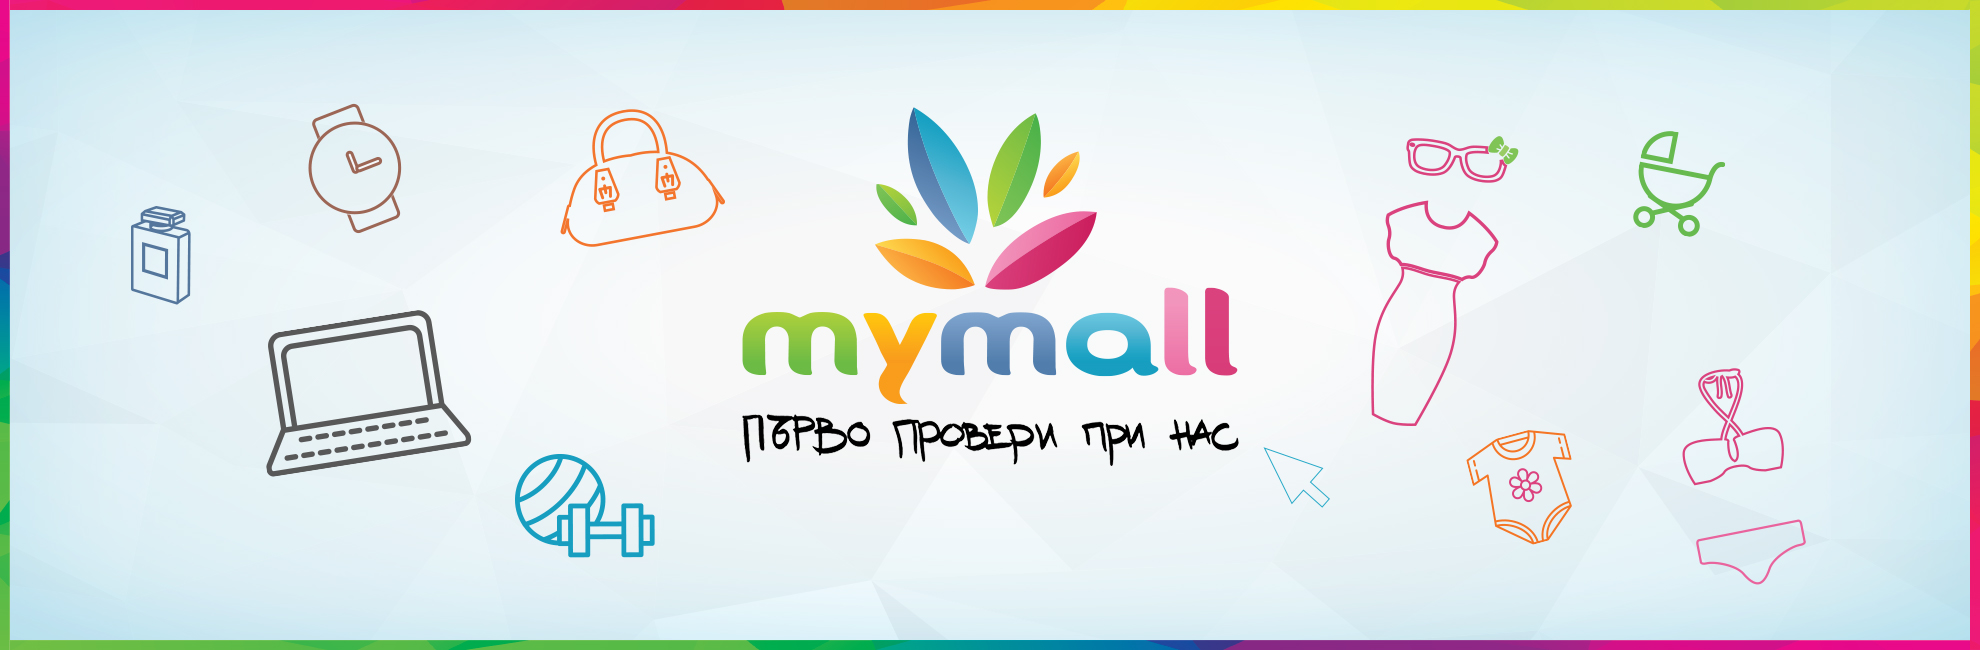 mymall-banner-1980x650px